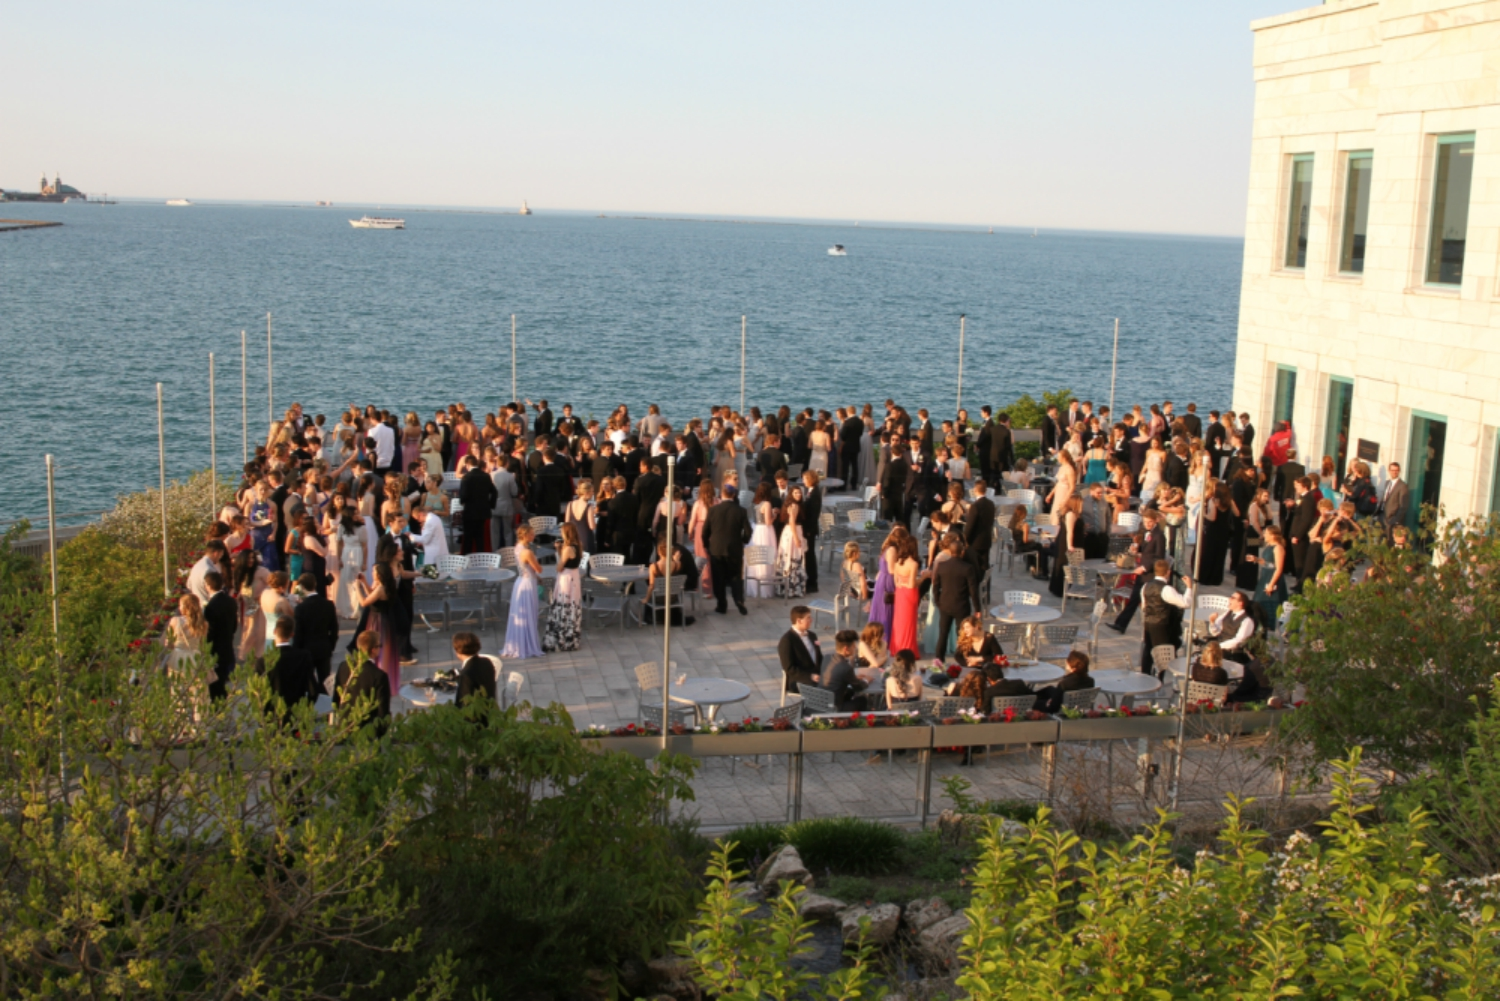 Prom 2017 will be held at the Shedd Aquarium, just as it was in 2016.